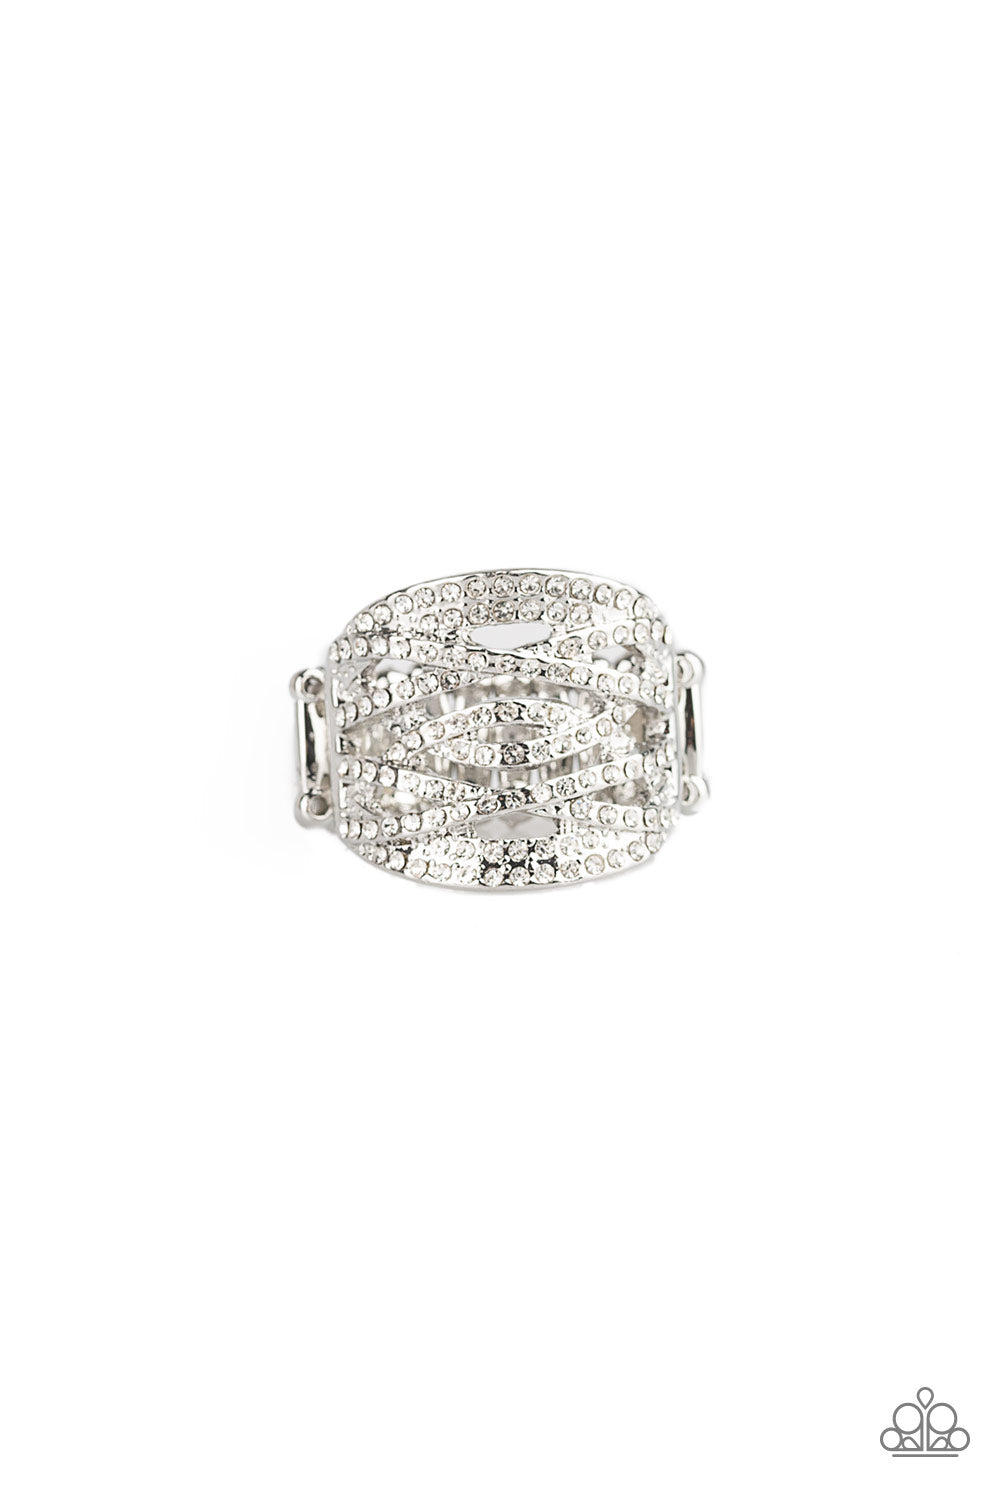 Paparazzi Accessories The Money Maker - White Ring - Be Adored Jewelry